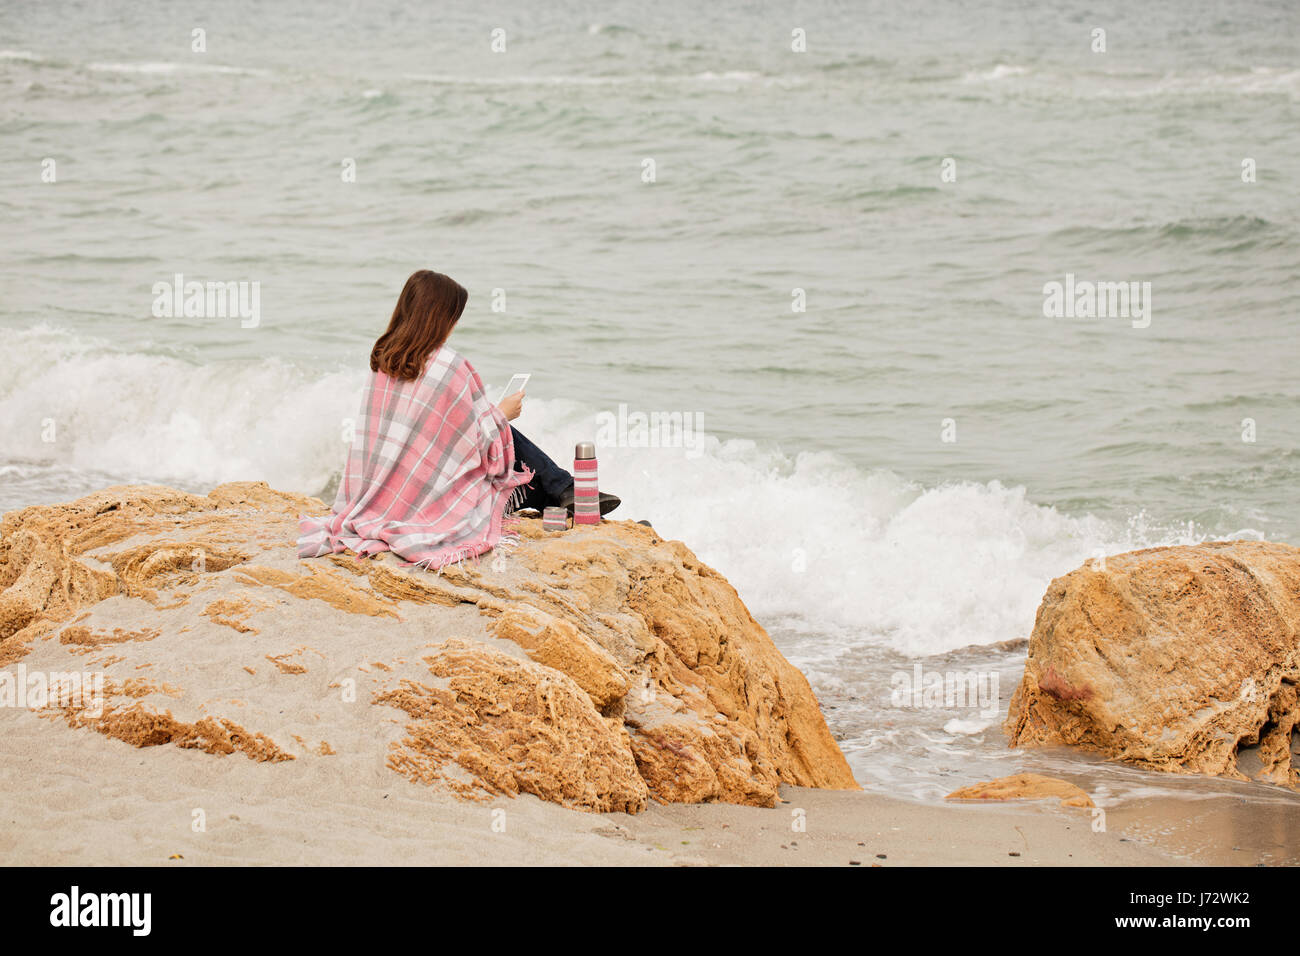 Young woman is covered with a rug sits on the seashore and reads an ebook. Selective focus. - Stock Image